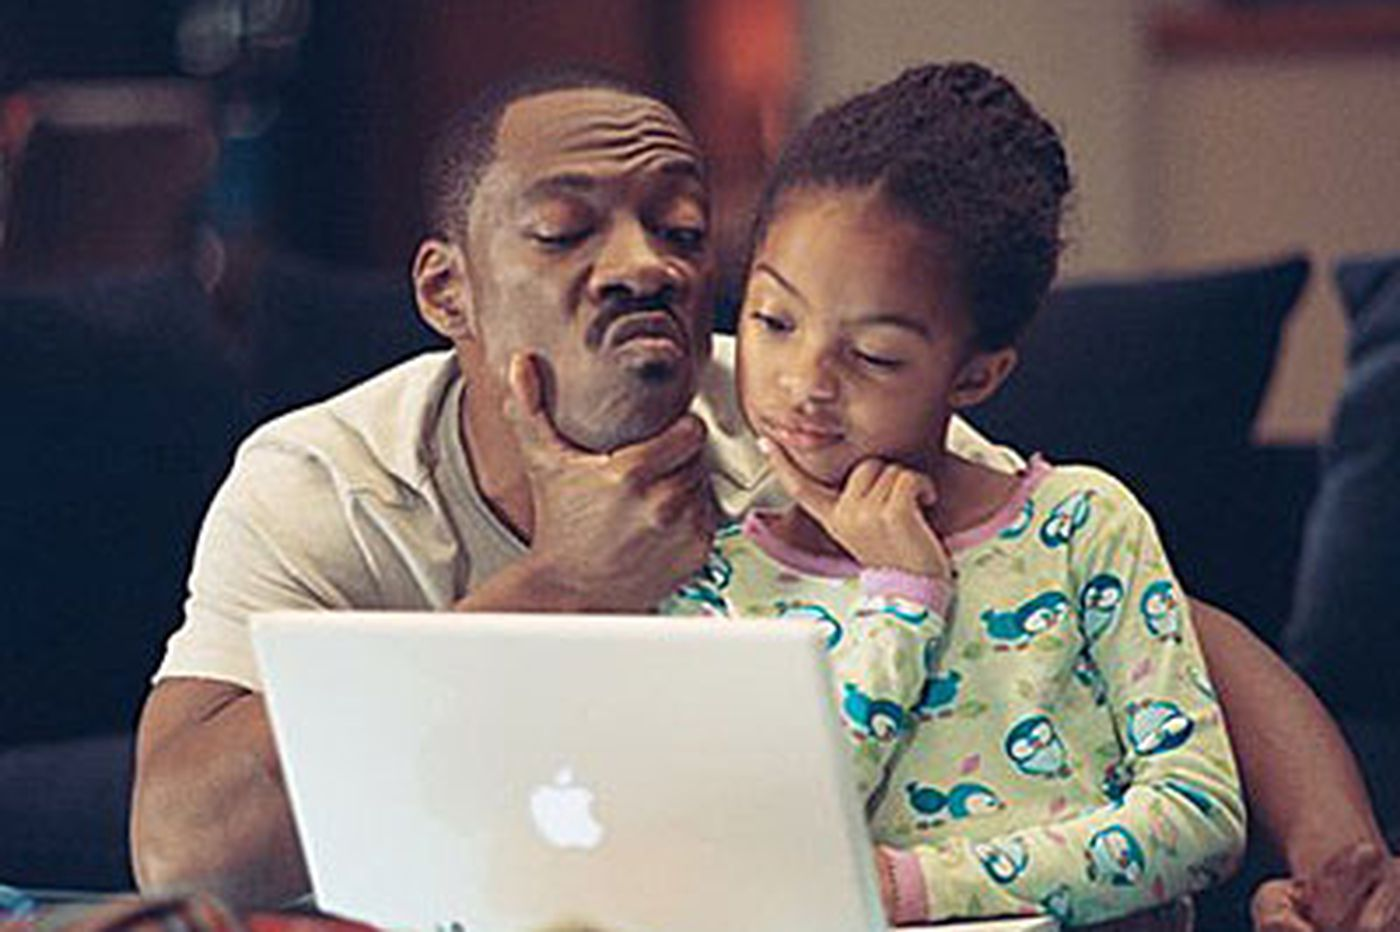 Daddy/daughter comedy with a feel-nice vibe